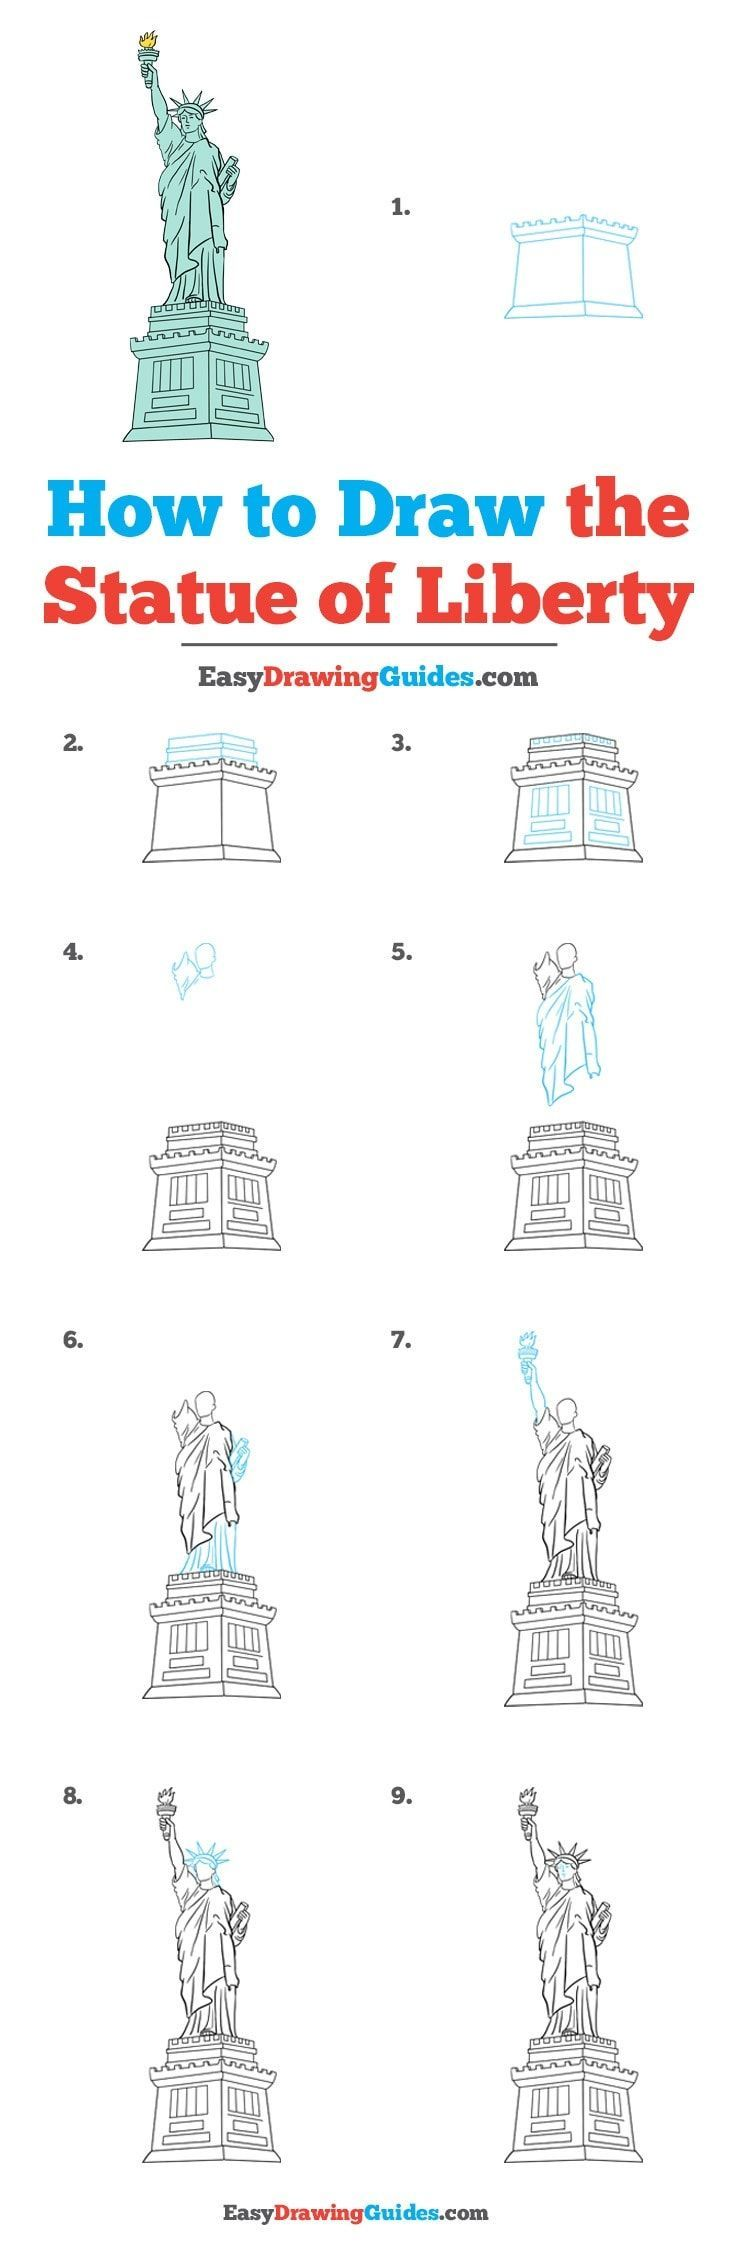 Statue Of Liberty Drawing Step By Step How to Draw the Statue of Liberty animals Easy